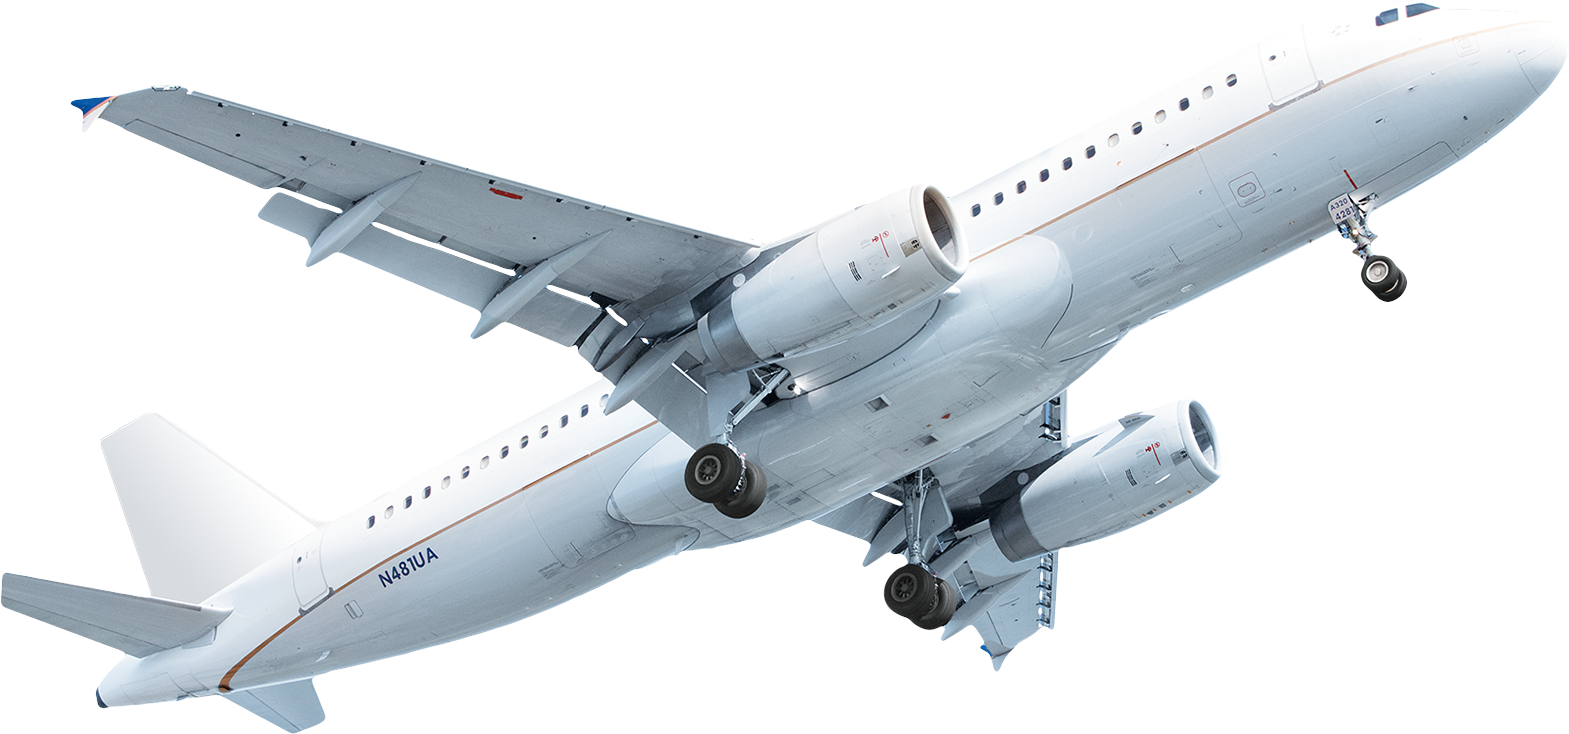 Airplane PNG Images Transparent Free Download.